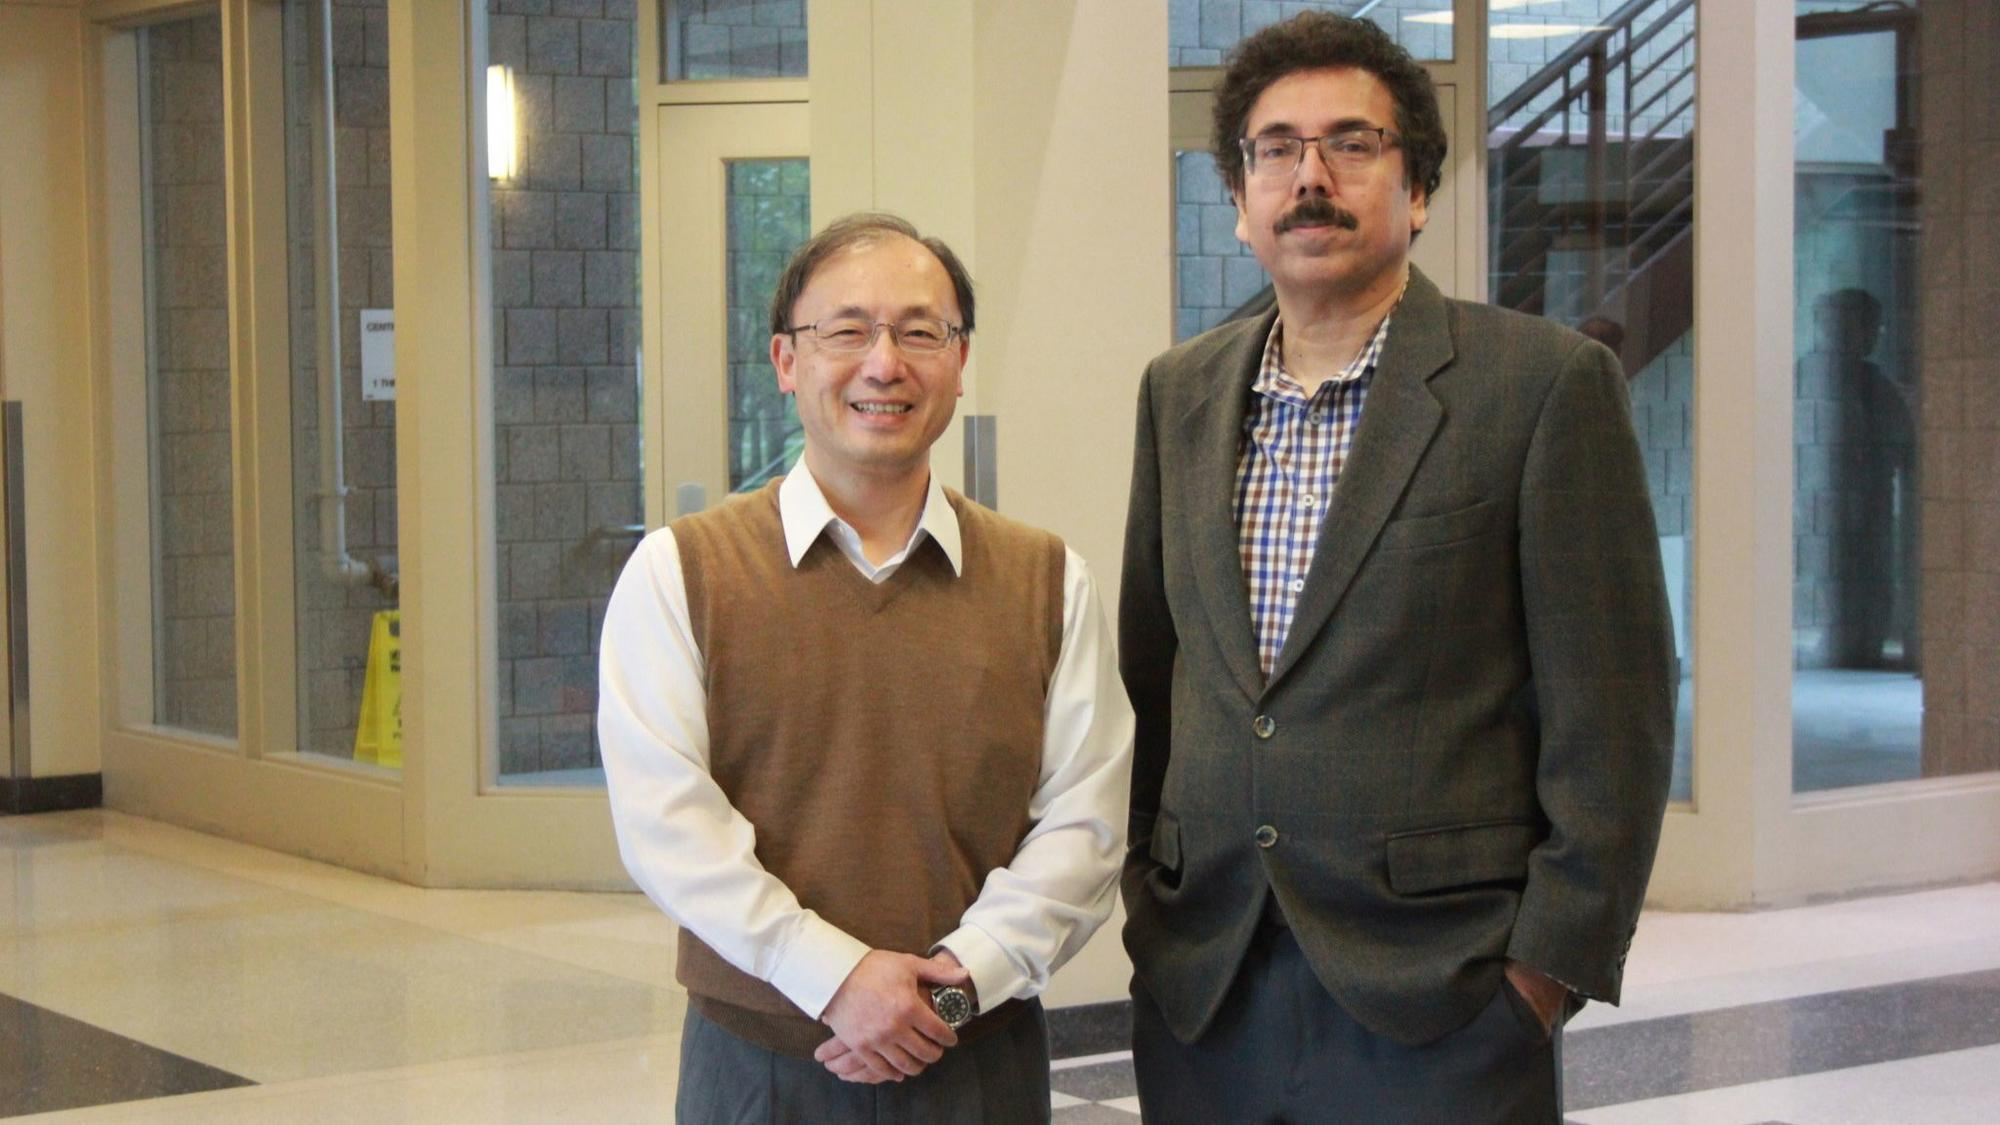 IUN professors develop NW Indiana's first regional business confidence inde...